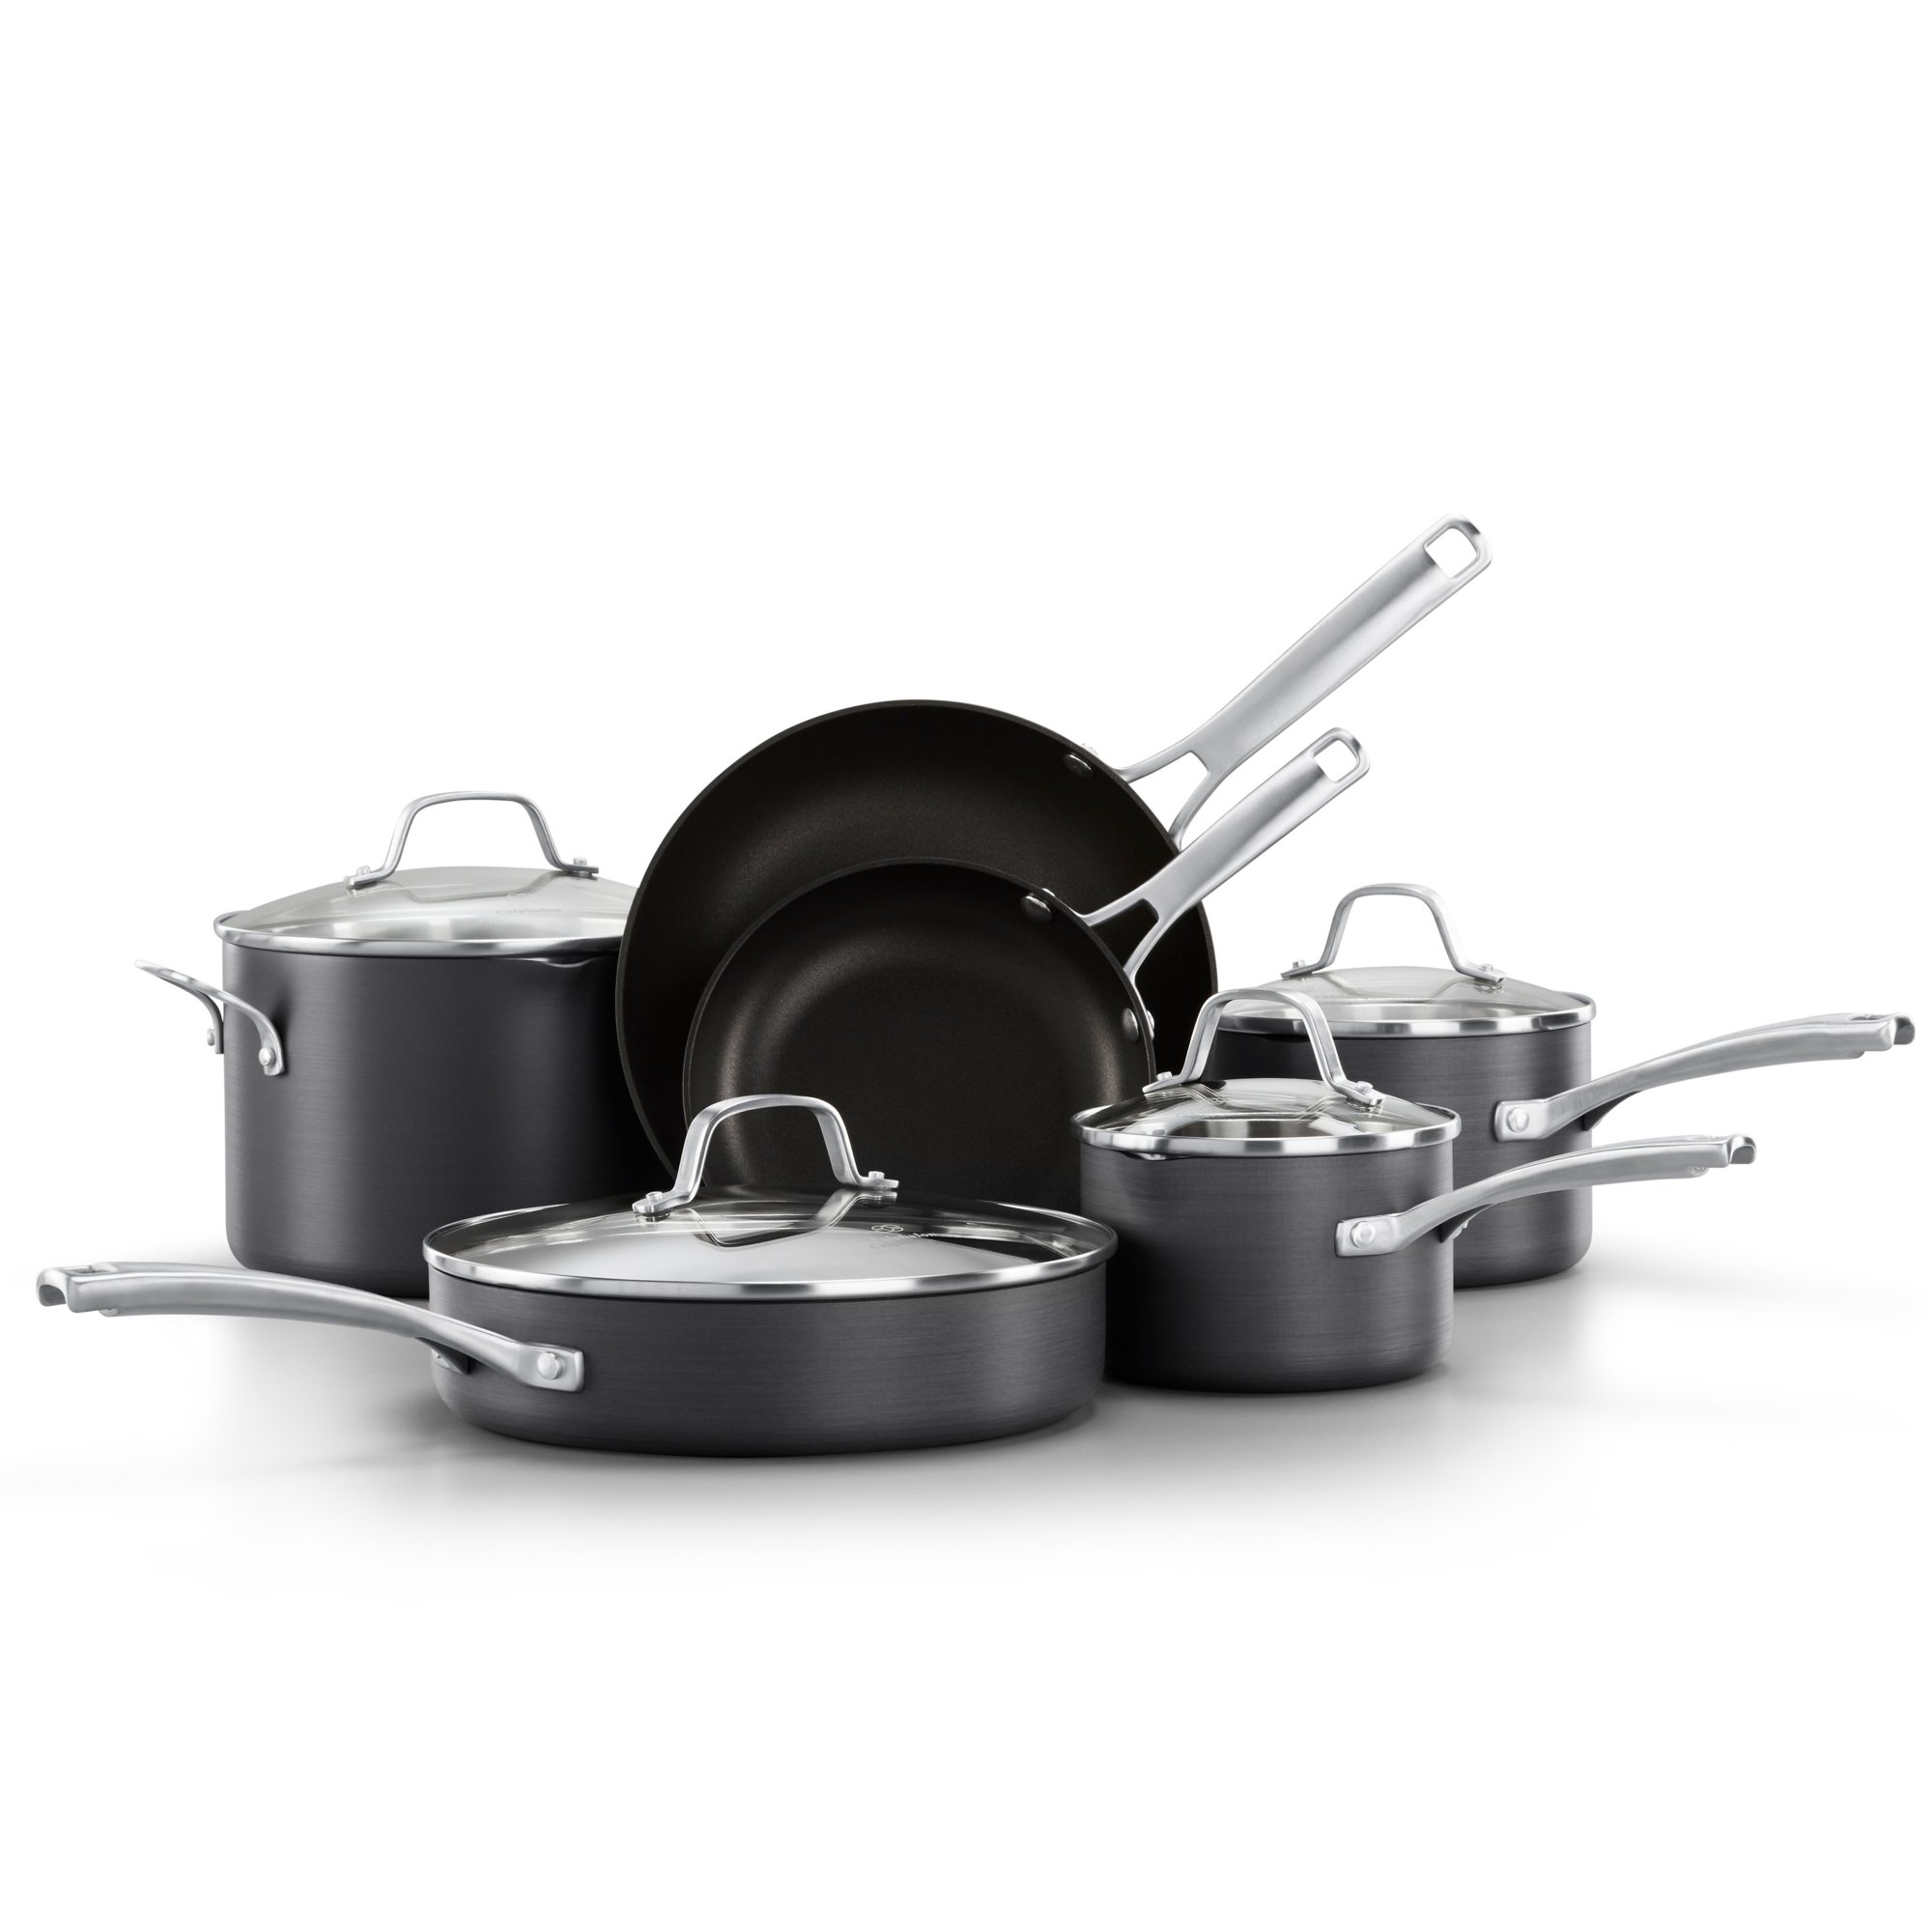 Calphalon Classic™ Nonstick 10-Piece Cookware Set